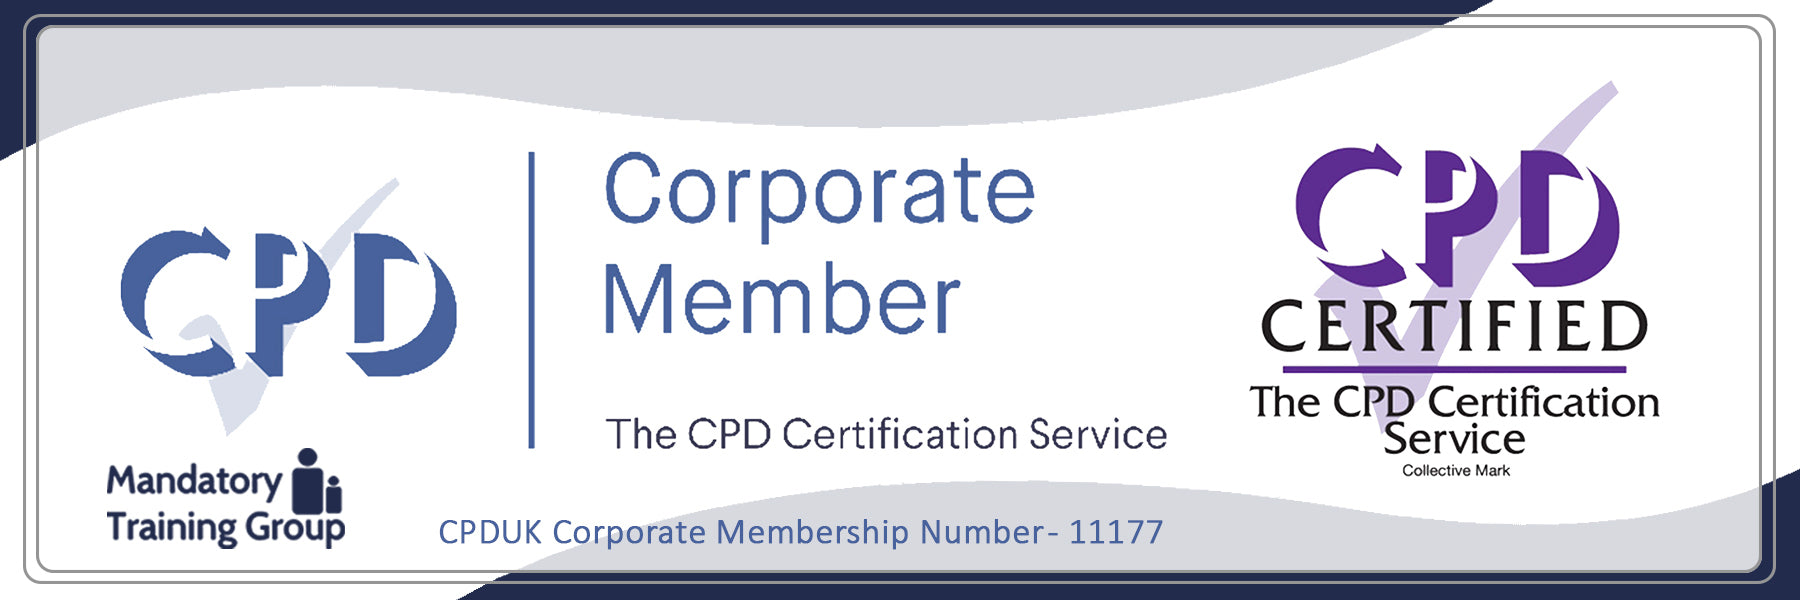 Care Certificate Standard 3 - Train the Trainer Course + Trainer Pack- CPDUK Accredited - The Mandatory Training Group UK -